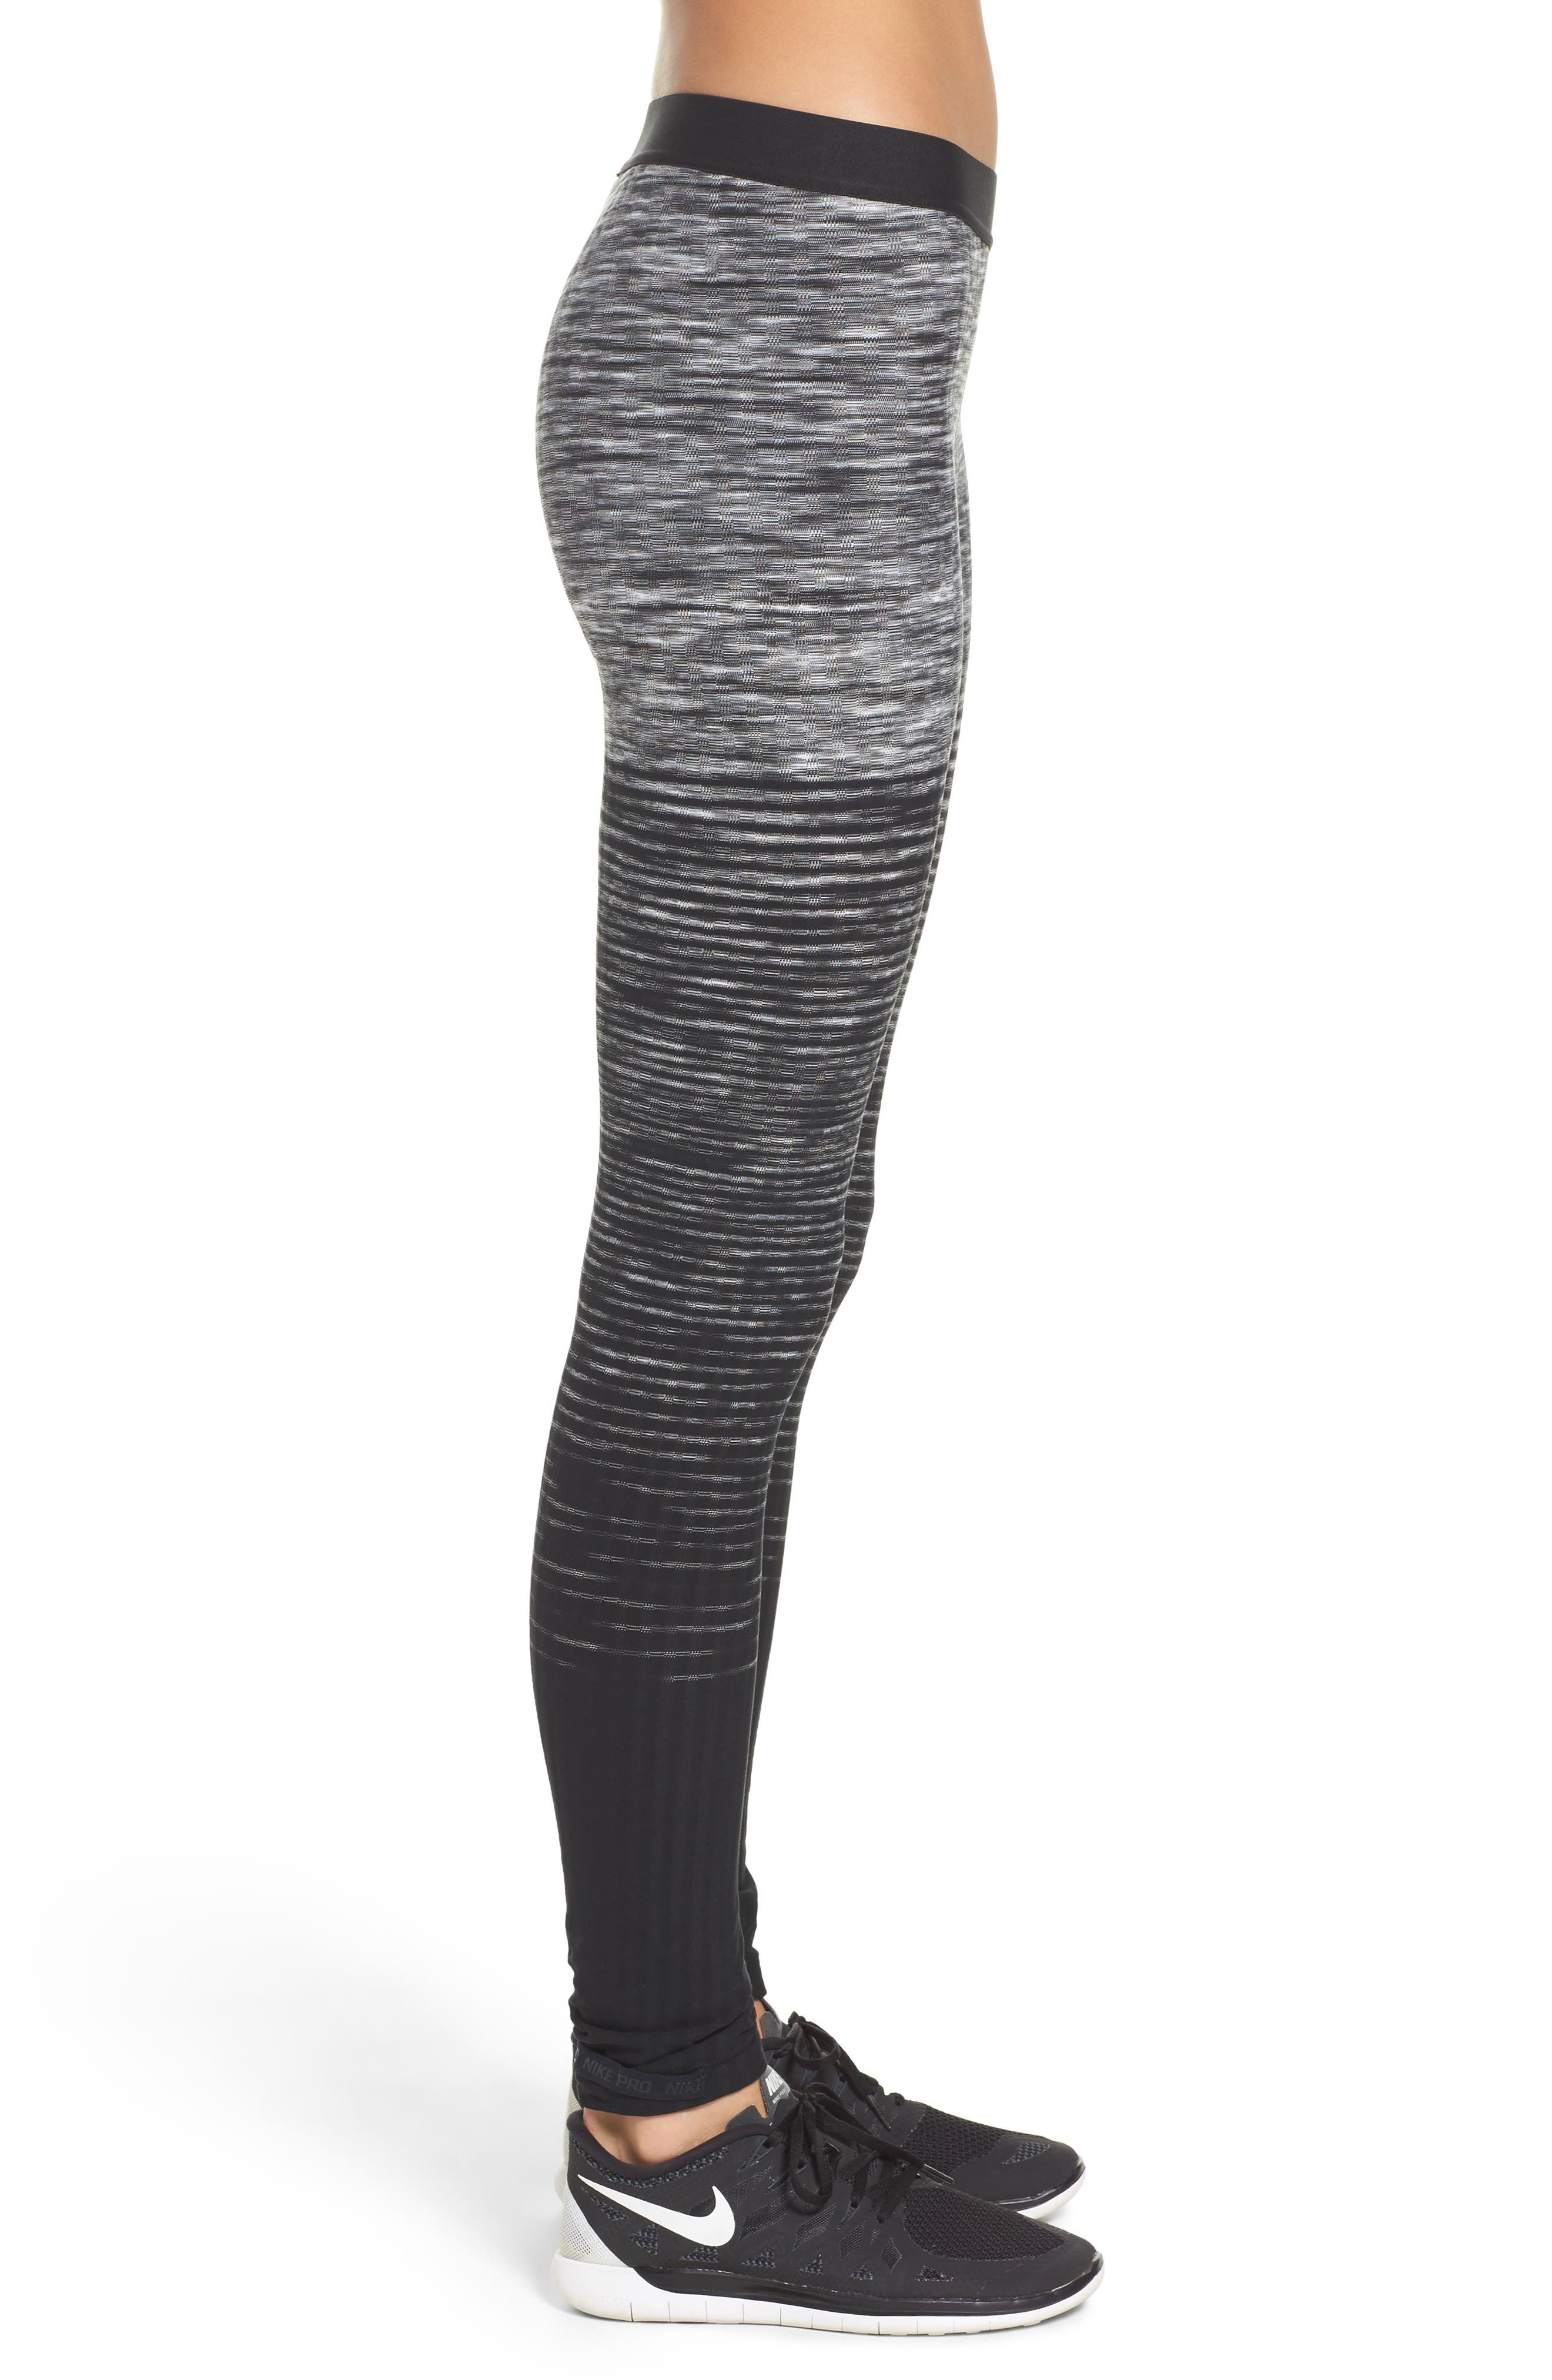 Pro Hyperwarm Training Tights,                             Alternate thumbnail 3, color,                             021